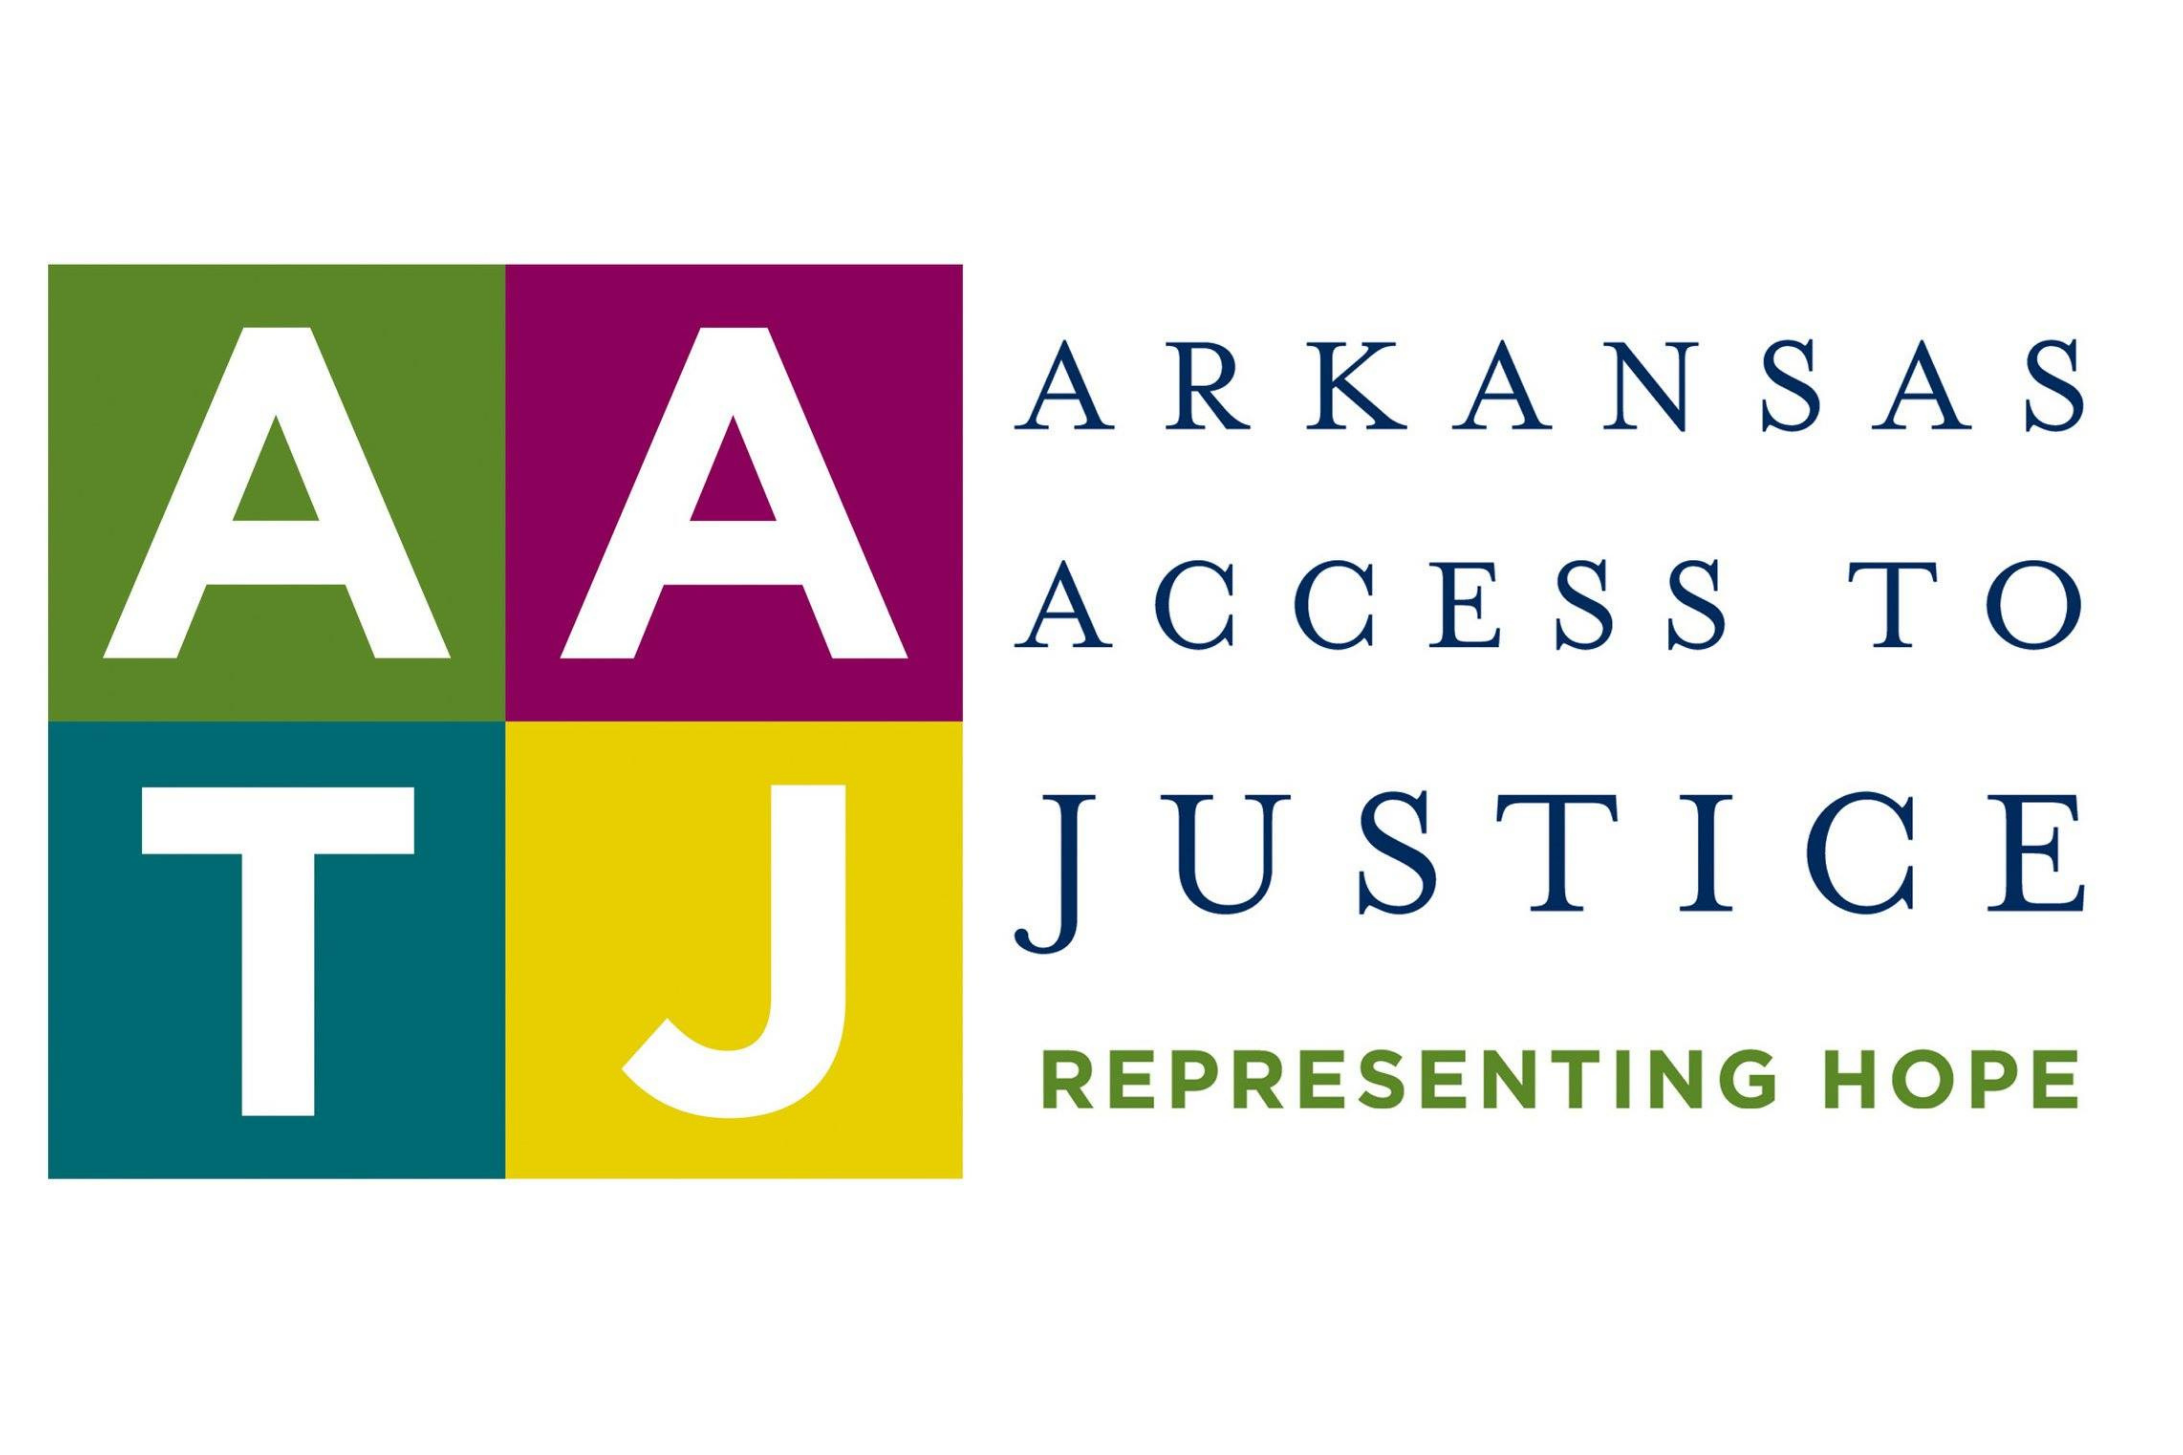 https://iolta.org/wp-content/uploads/Arkansas-Access-to-Justice-Logo.png